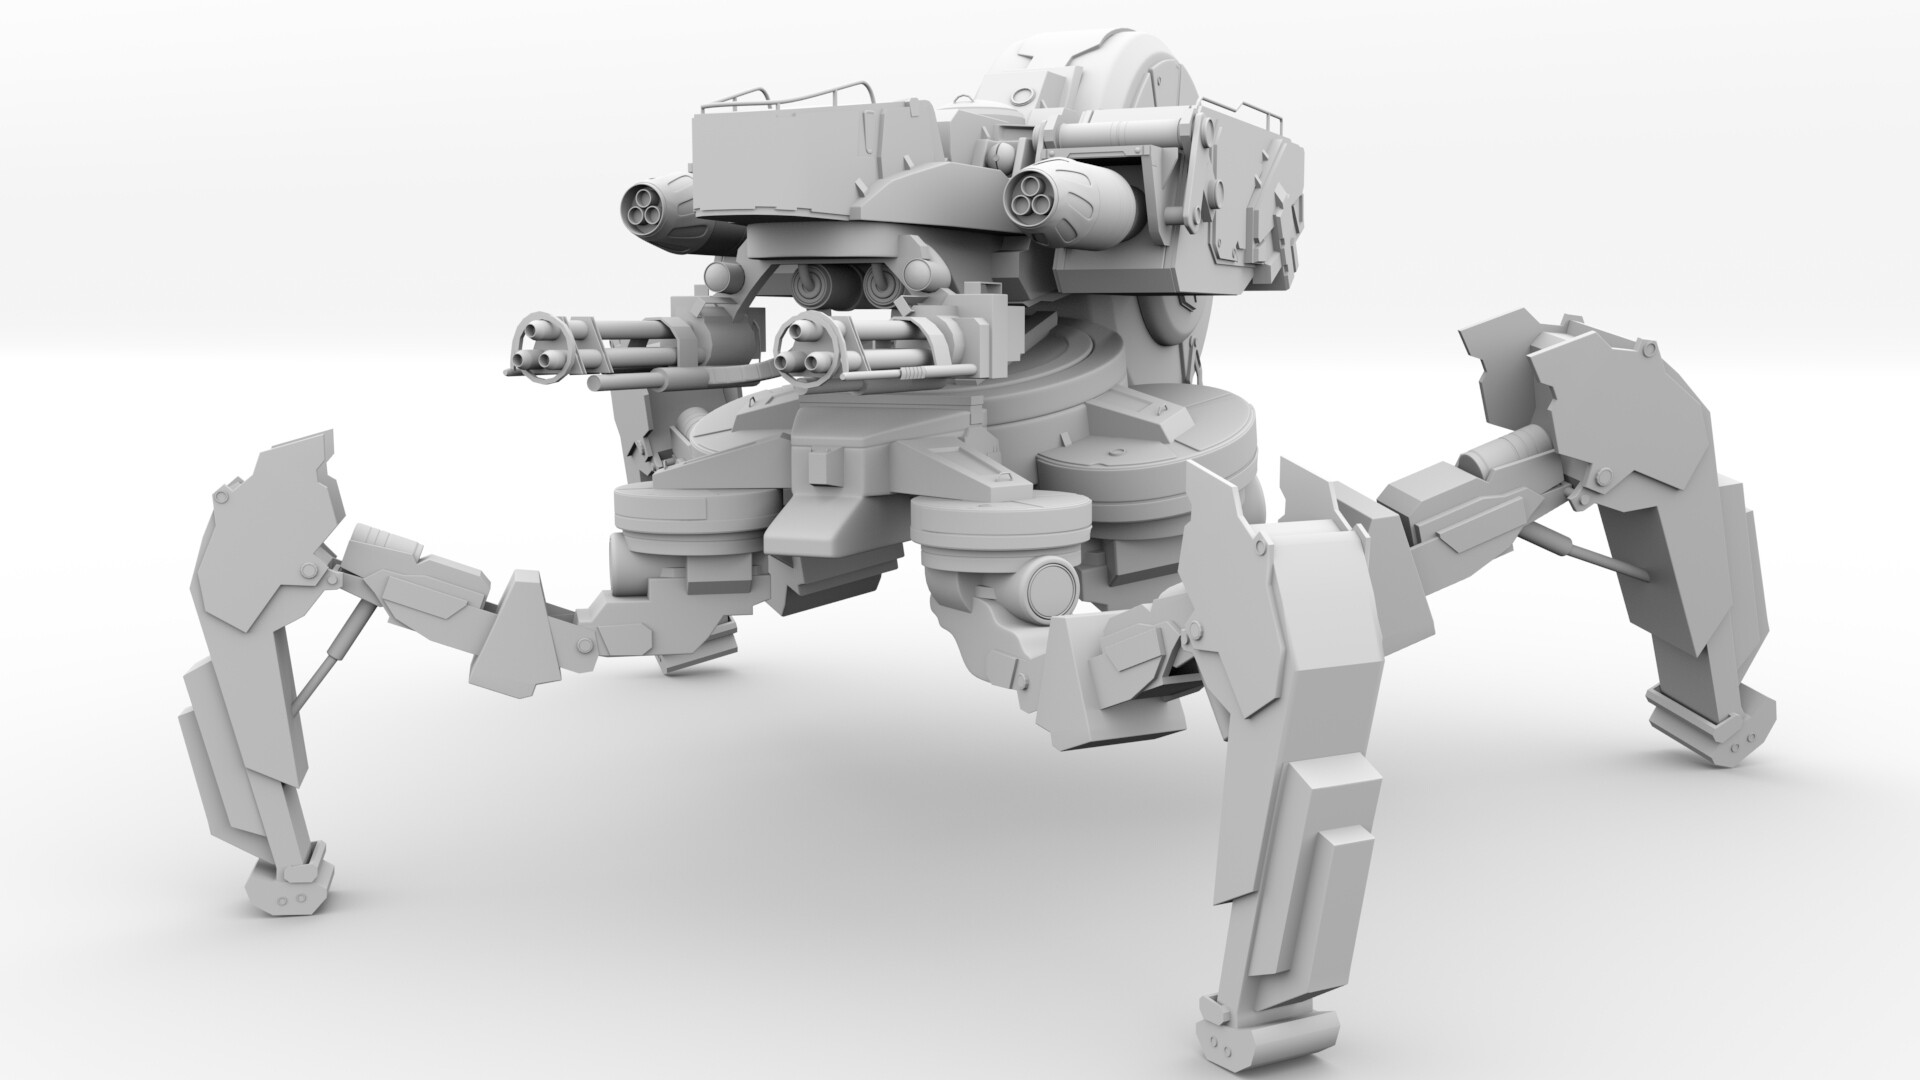 Occlusion Render